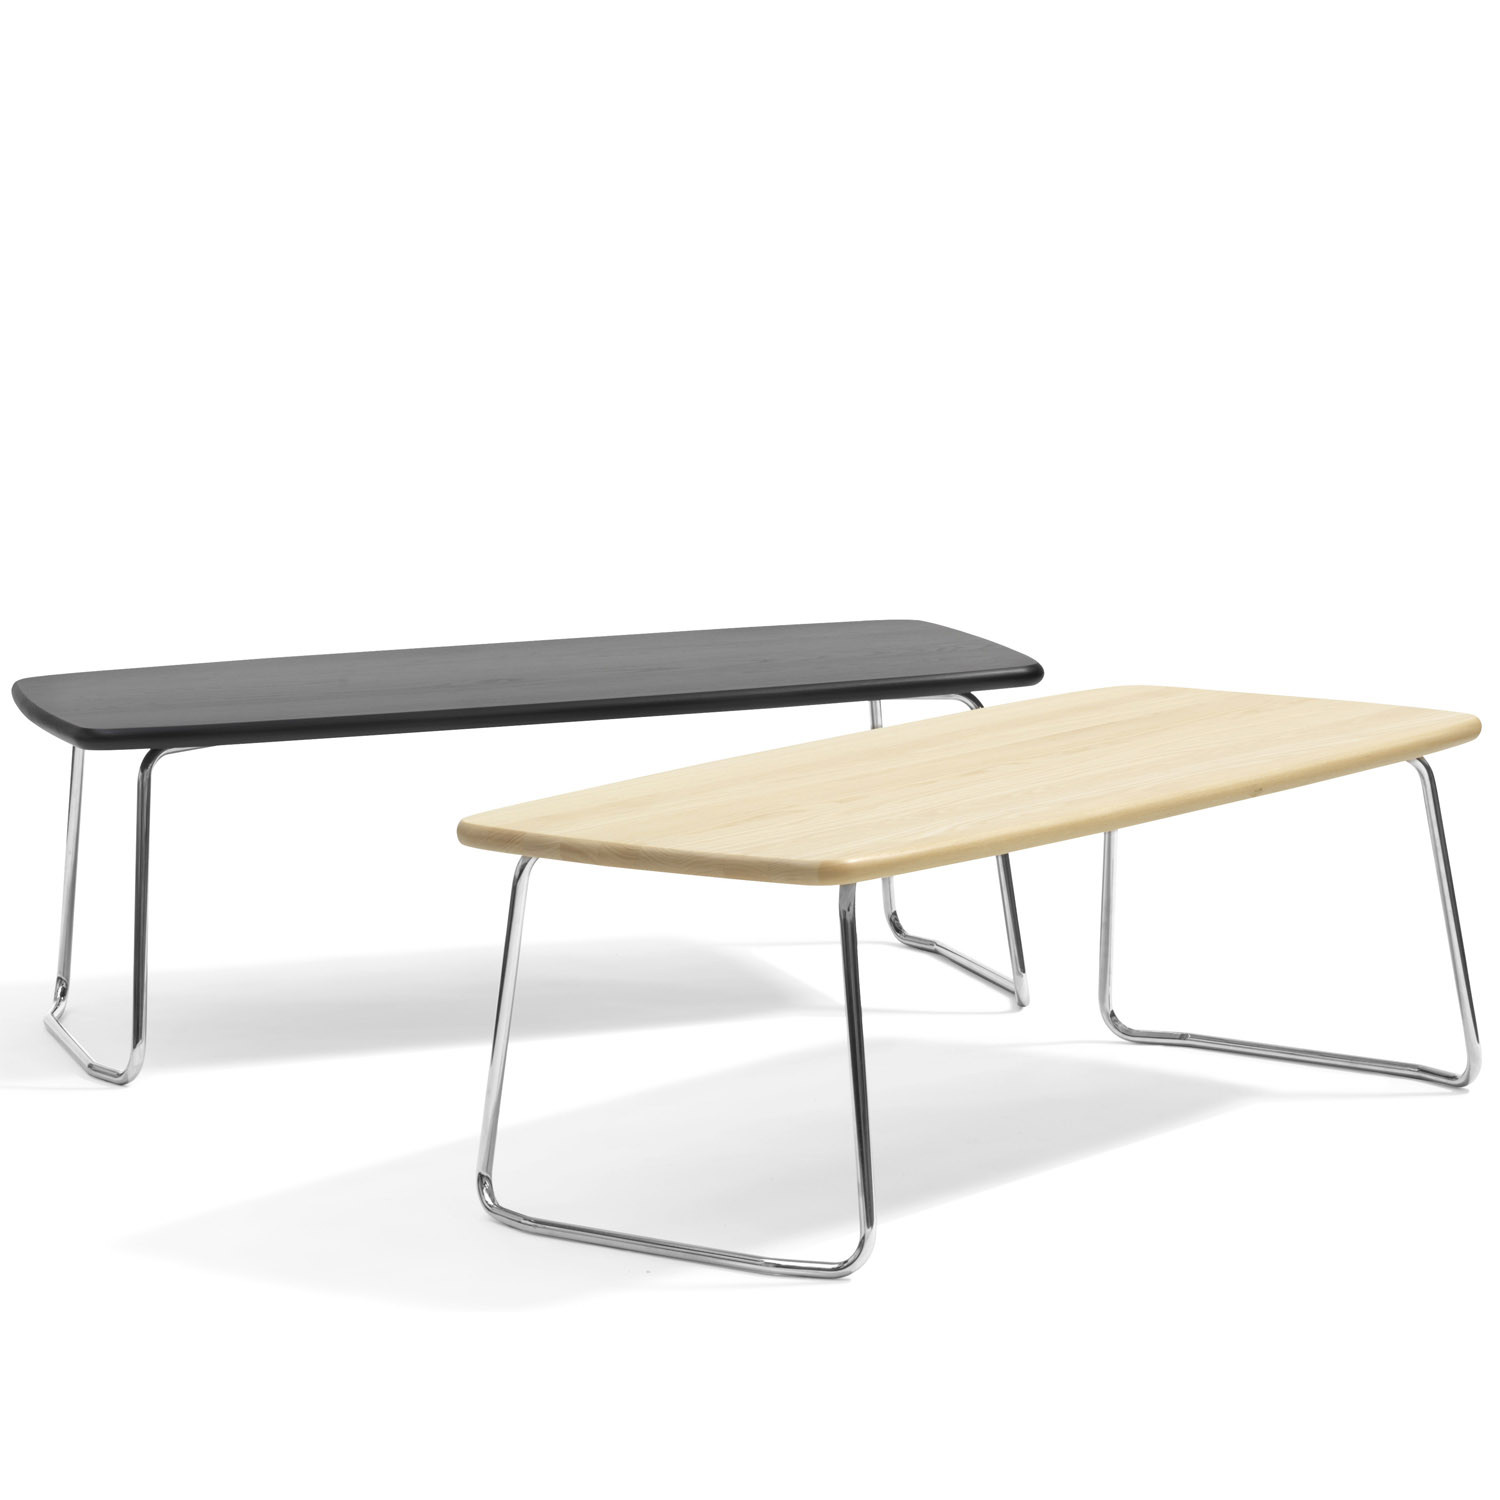 Dundra table l74 modern coffee tables apres furniture